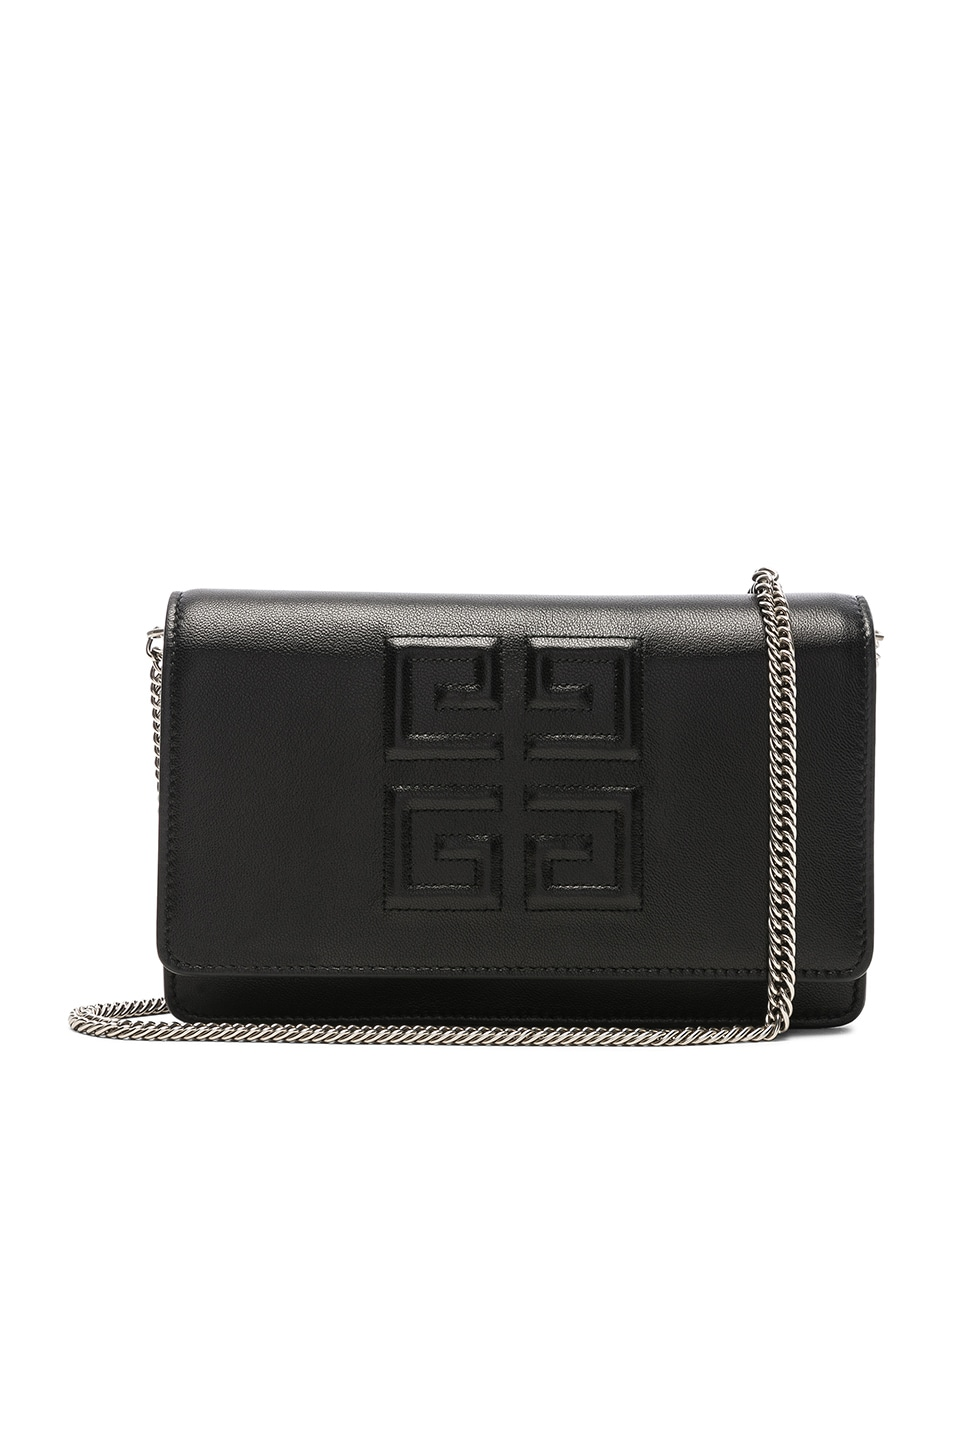 Image 1 of Givenchy Emblem Chain Wallet in Black